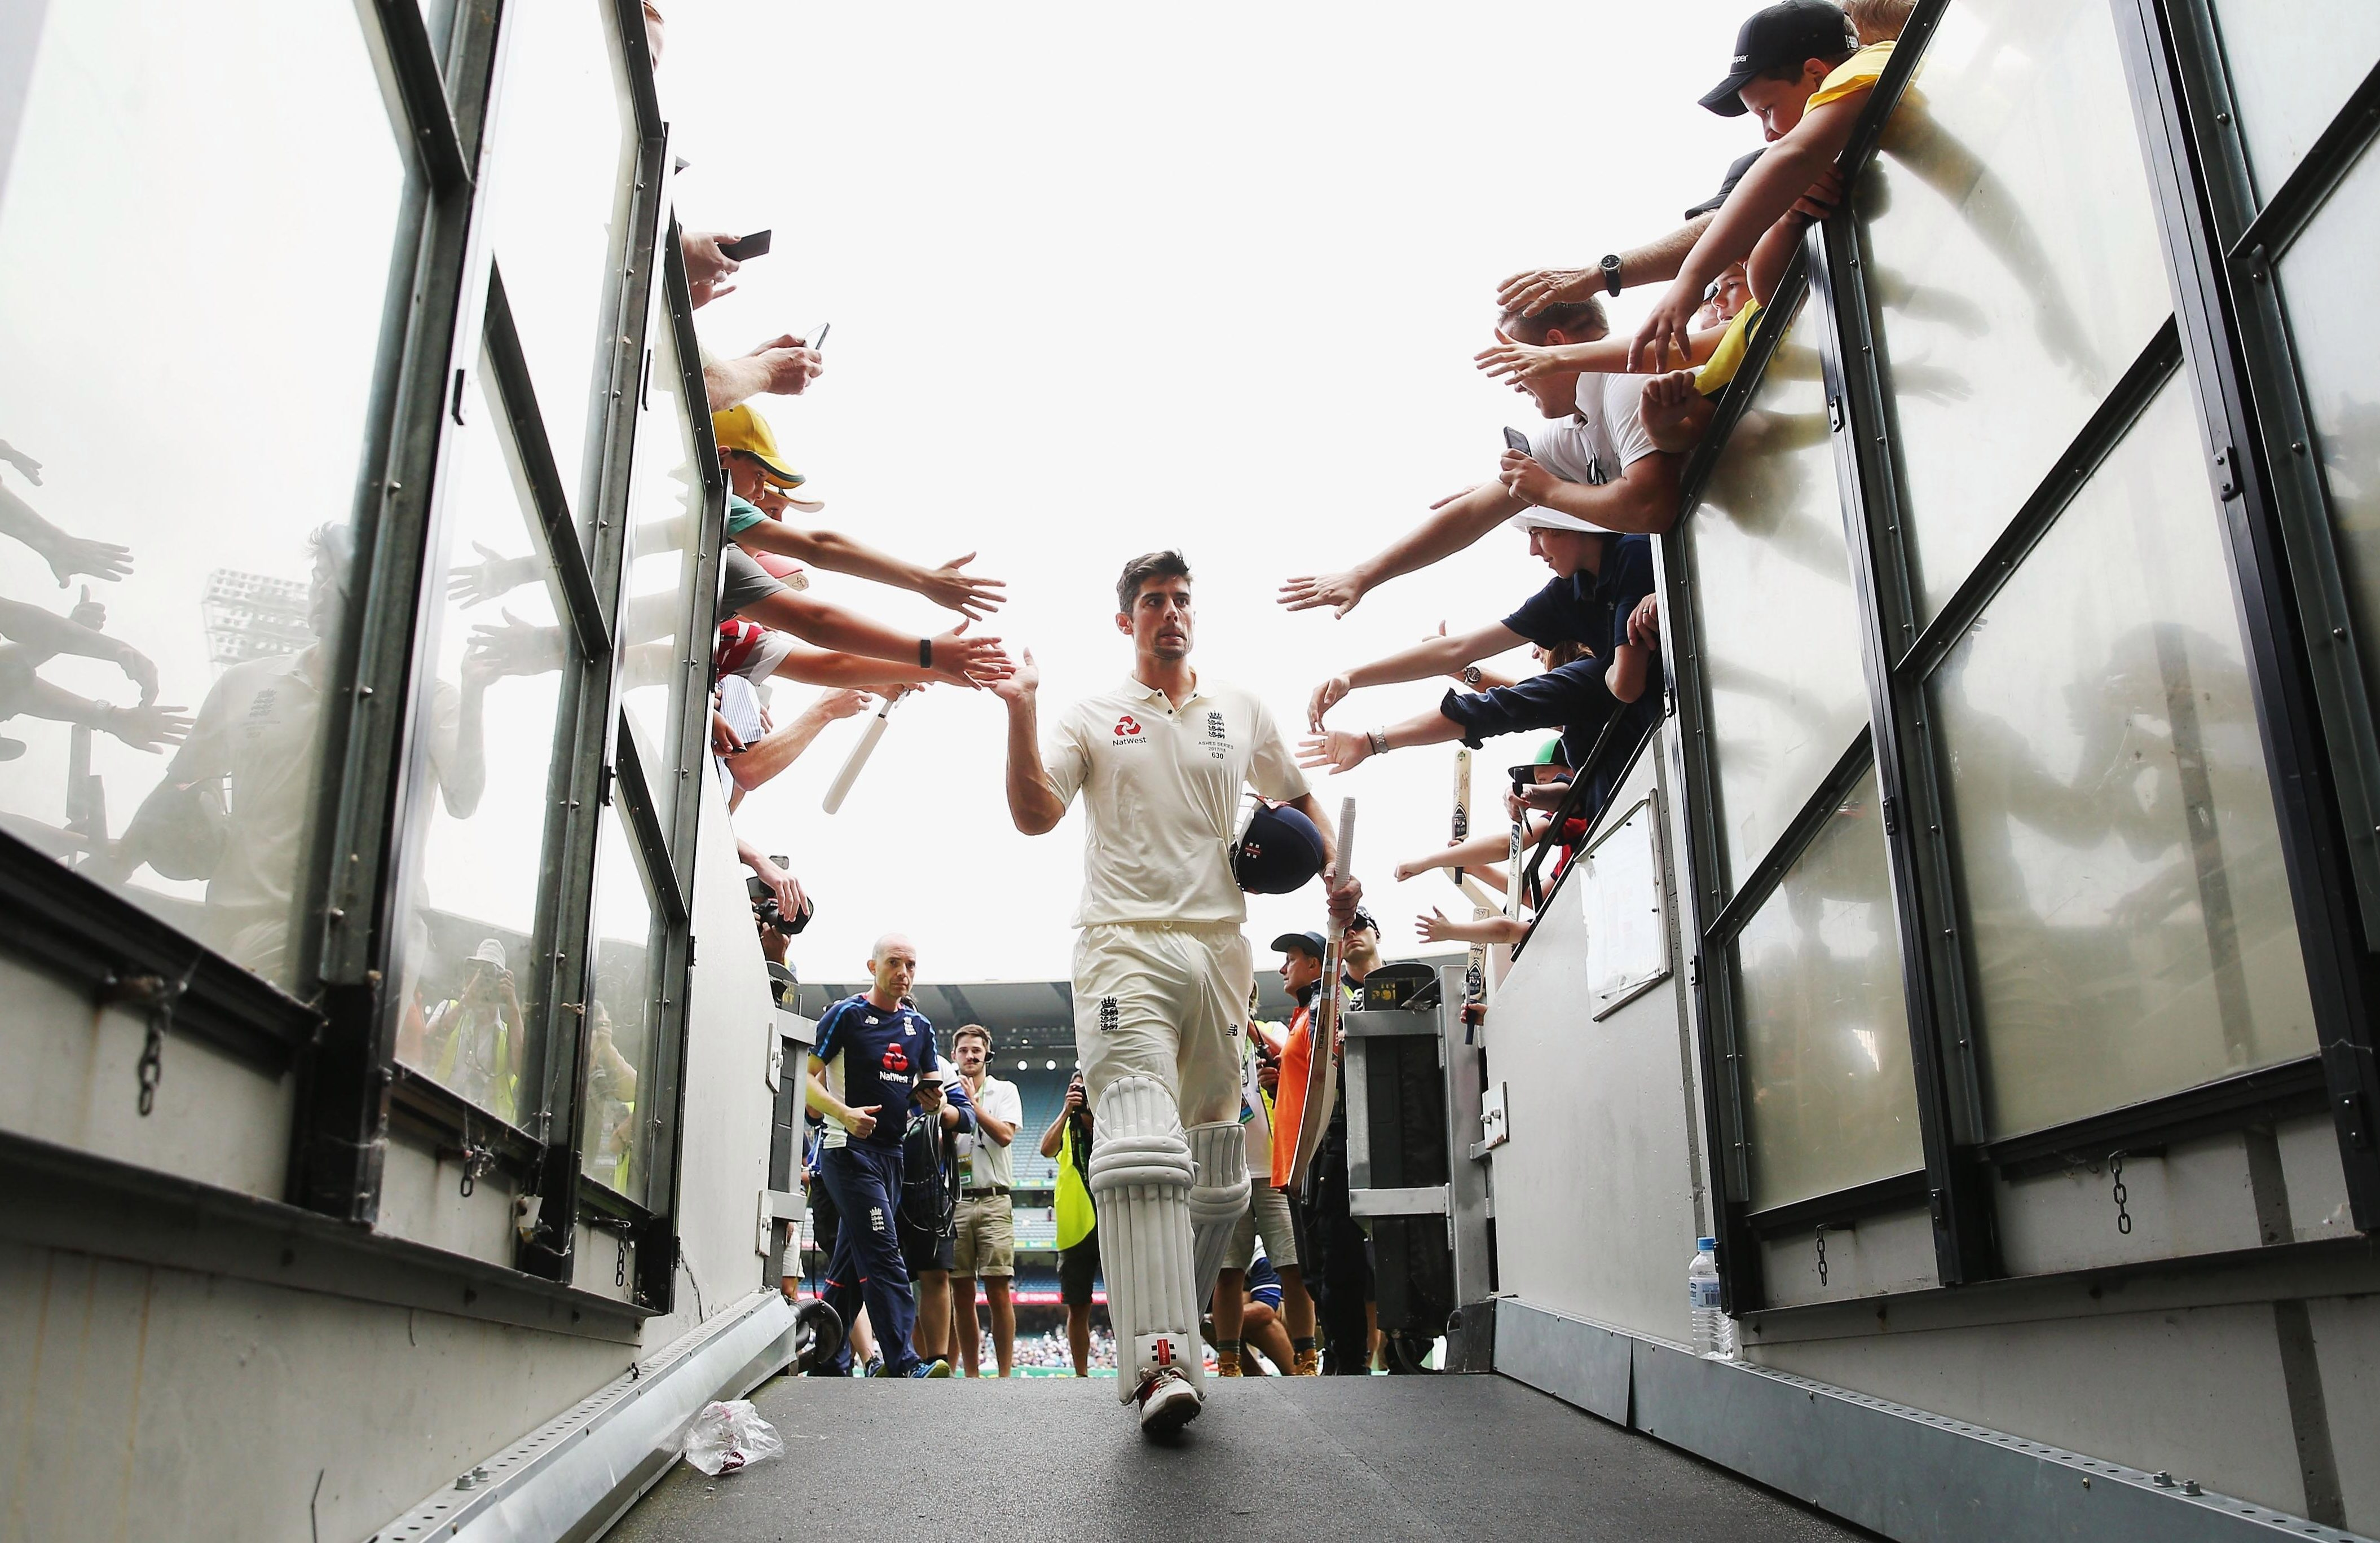 Alastair Cook of England walks off at the close of play after making 244 not out during day three of the Fourth Test in the 2017/18 Ashes series